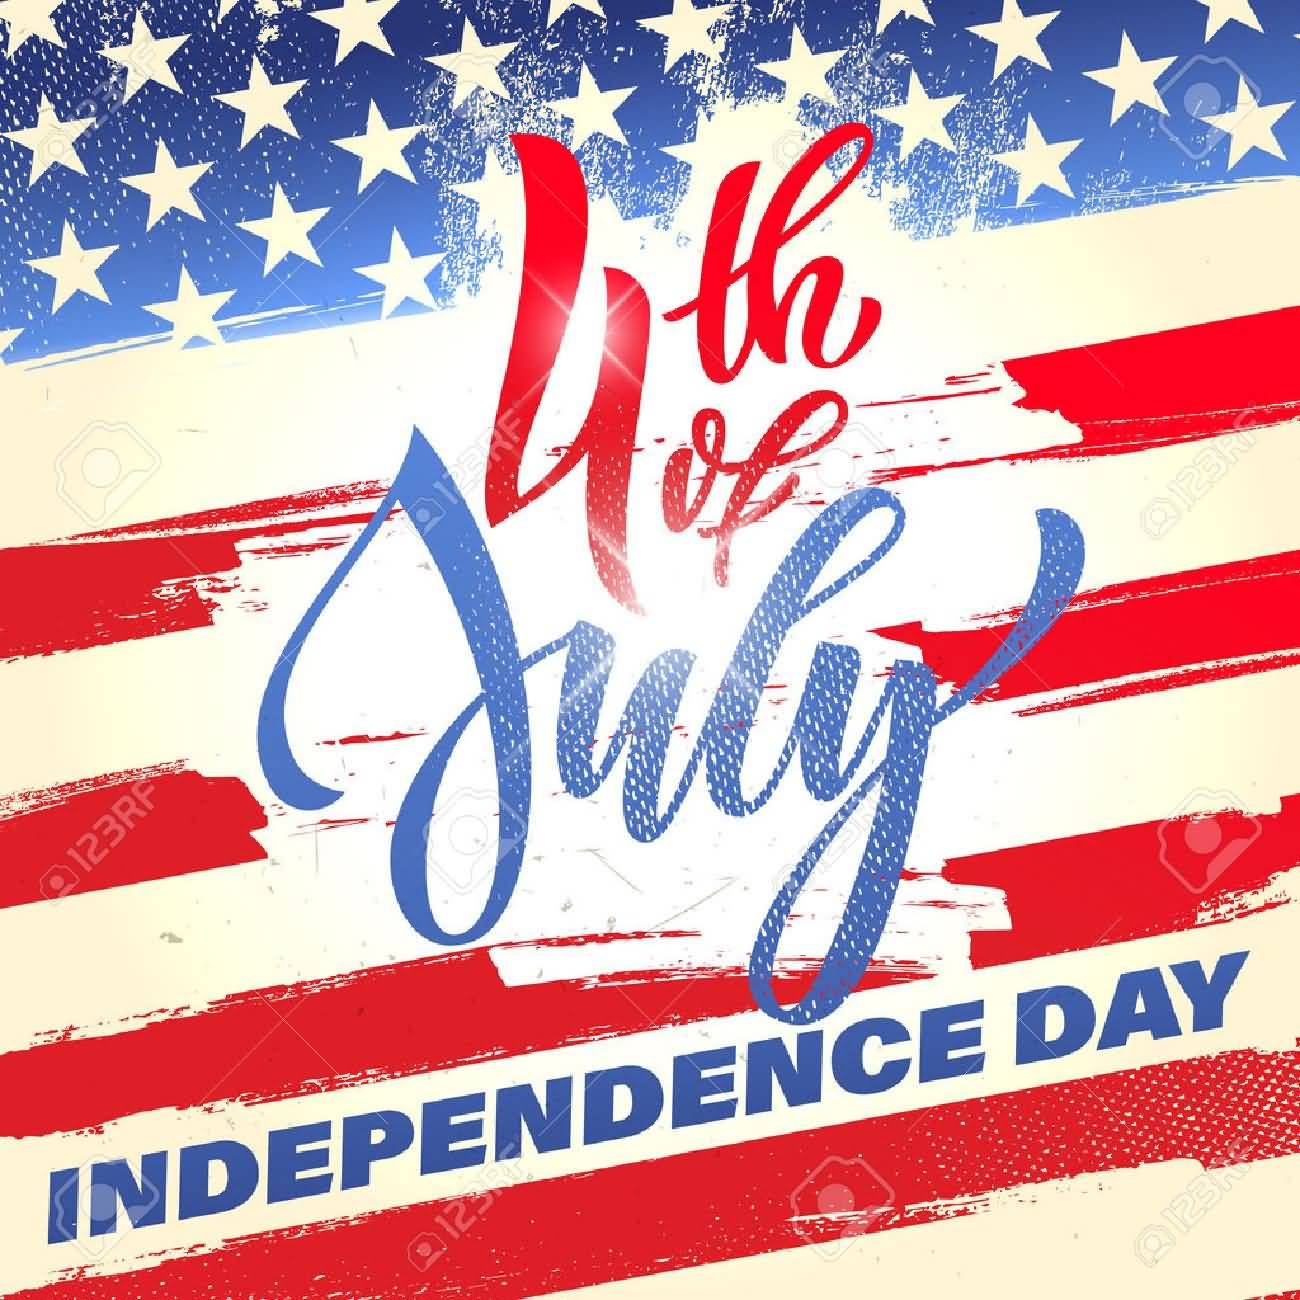 Greetings Cards Of 4th July Wishes Happy Independence Day Wishes